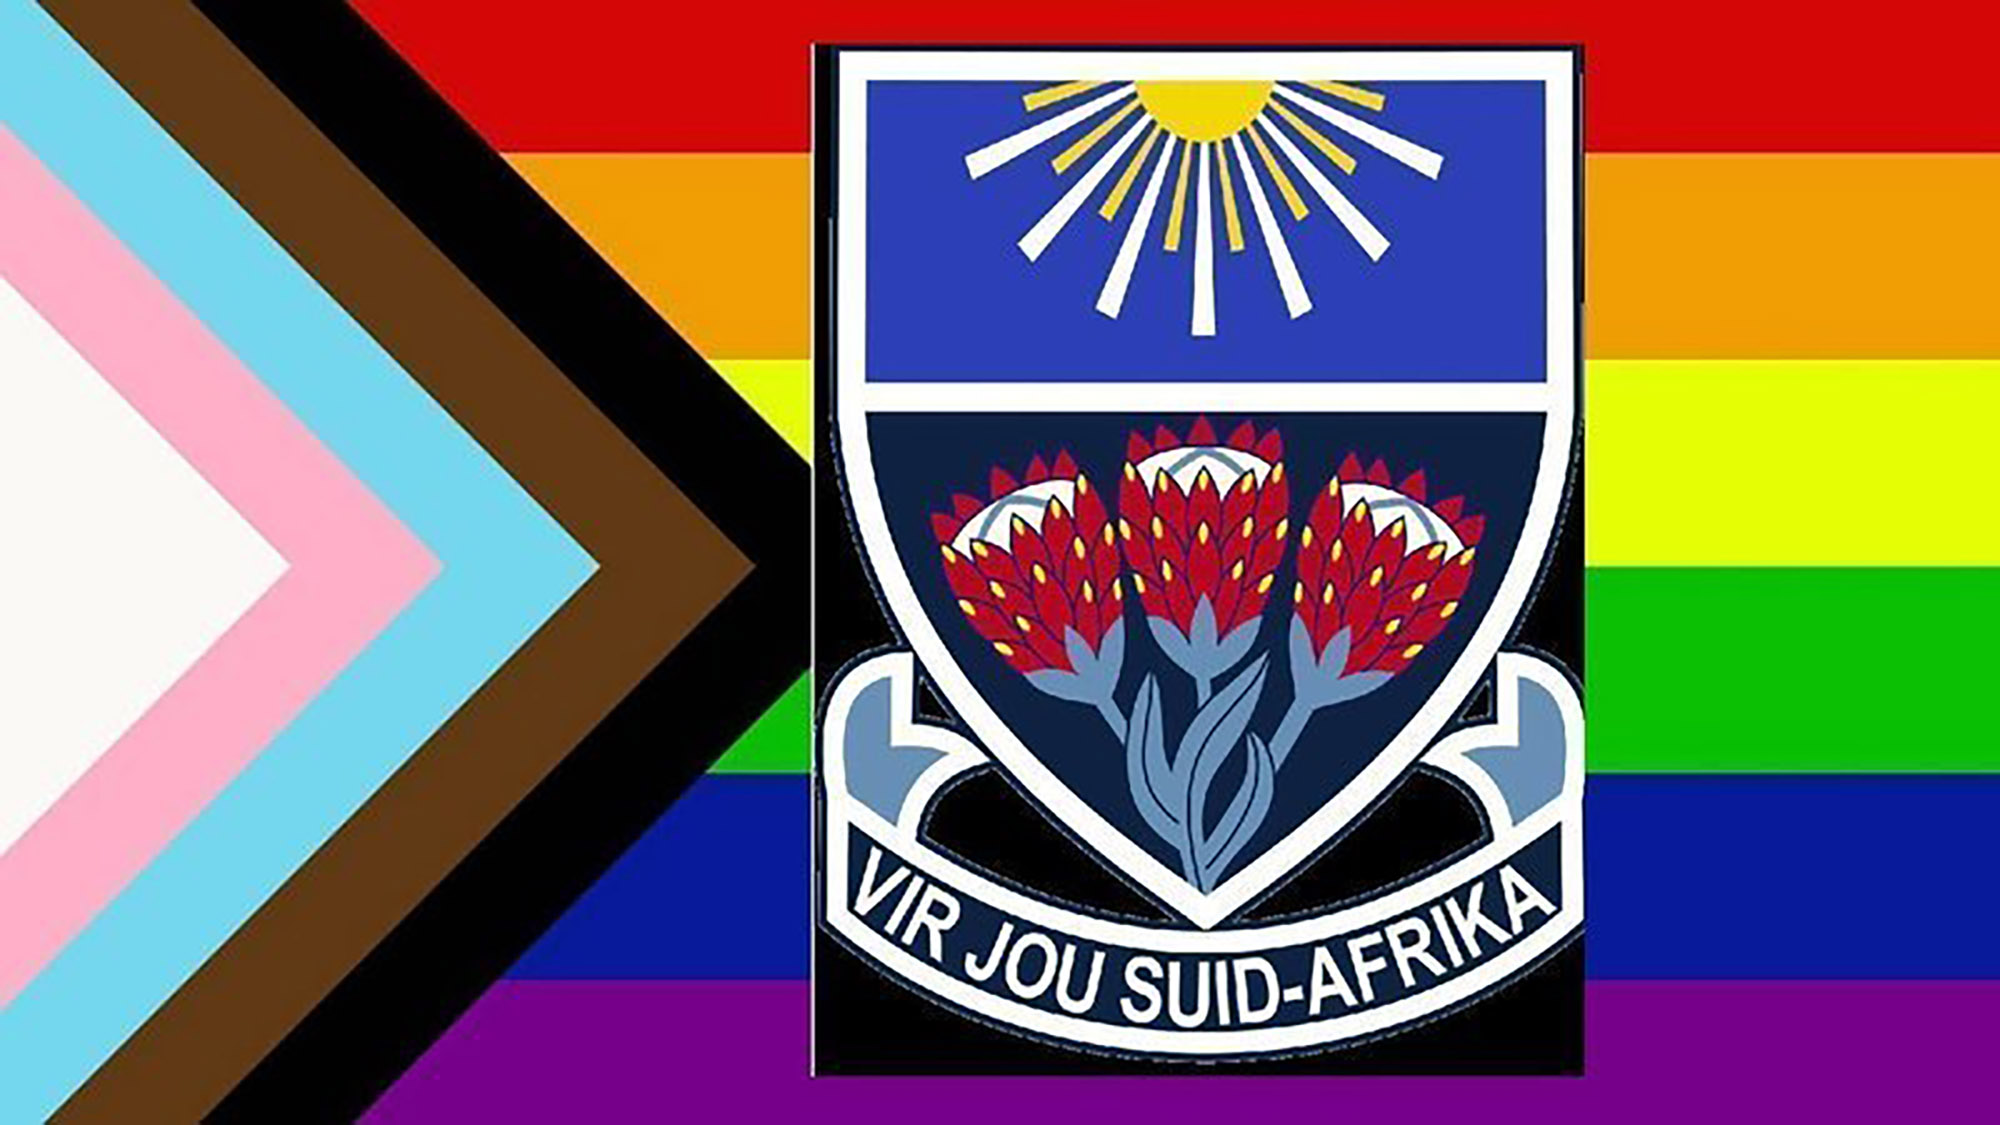 Probe launched into claims of homophobia after Pride Month celebration at DF Malan school - Daily Maverick